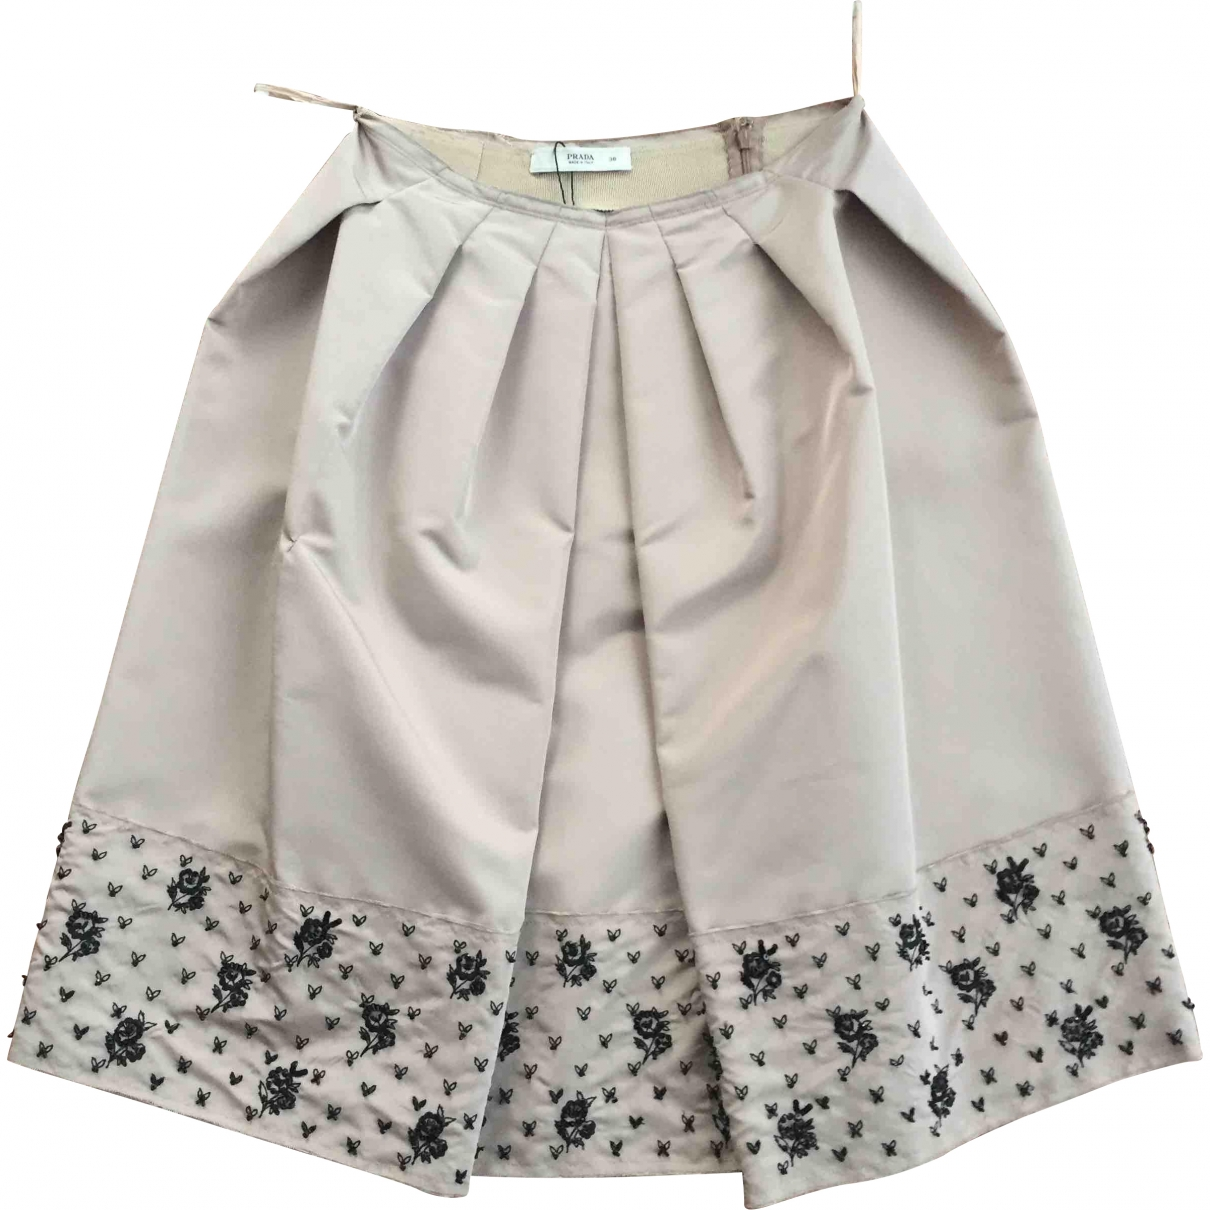 Prada \N Beige Silk skirt for Women 38 IT